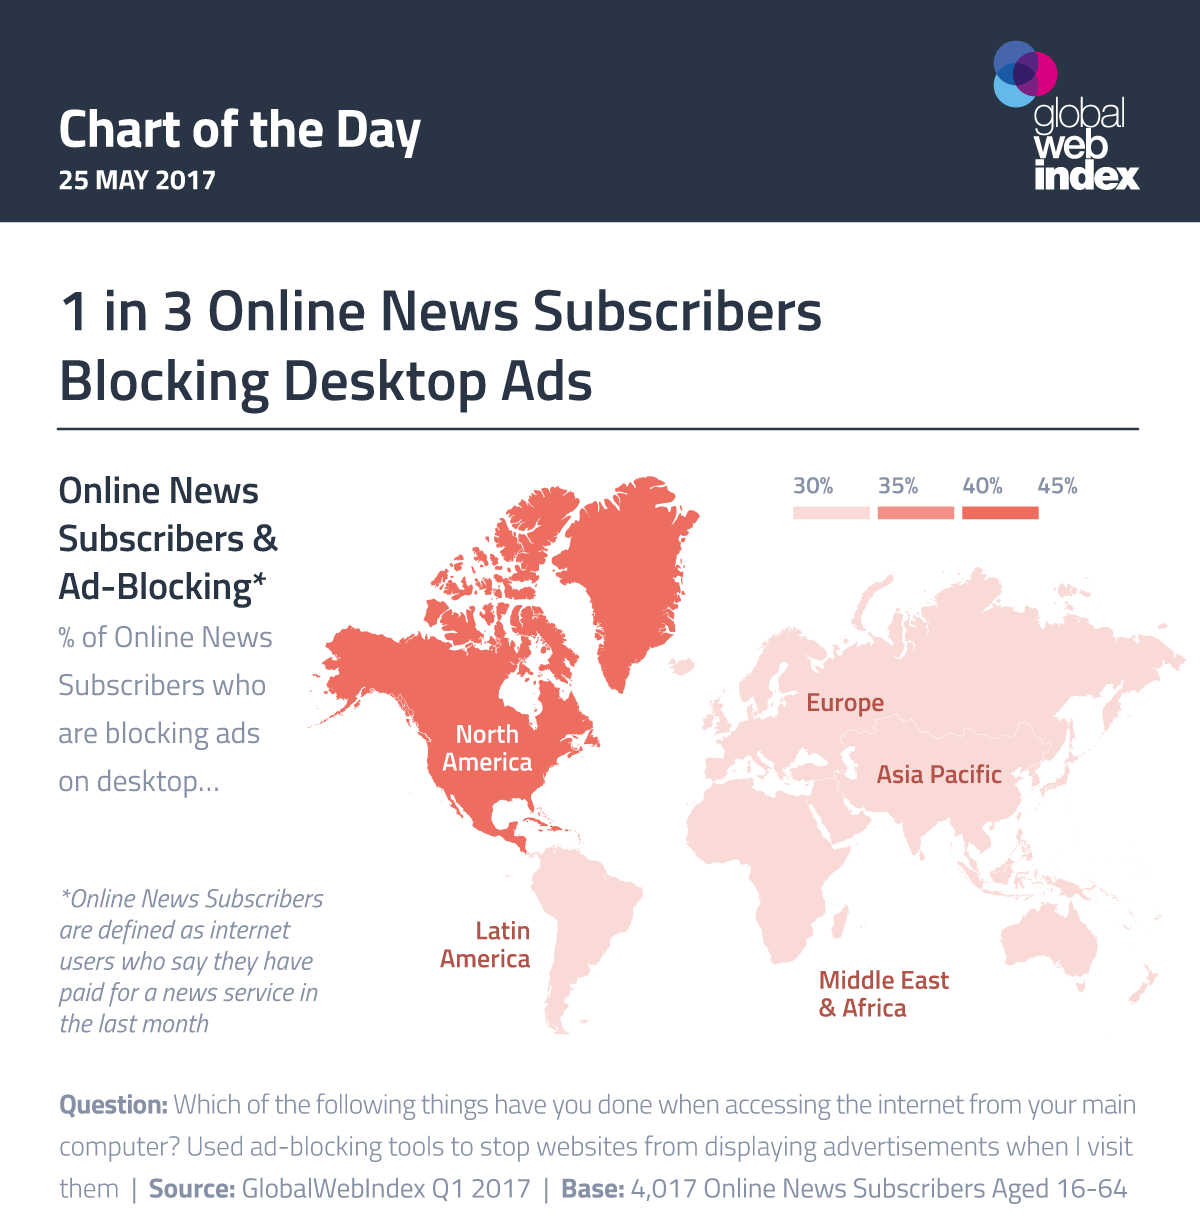 1 in 3 Online News Subscribers Blocking Desktop Ads